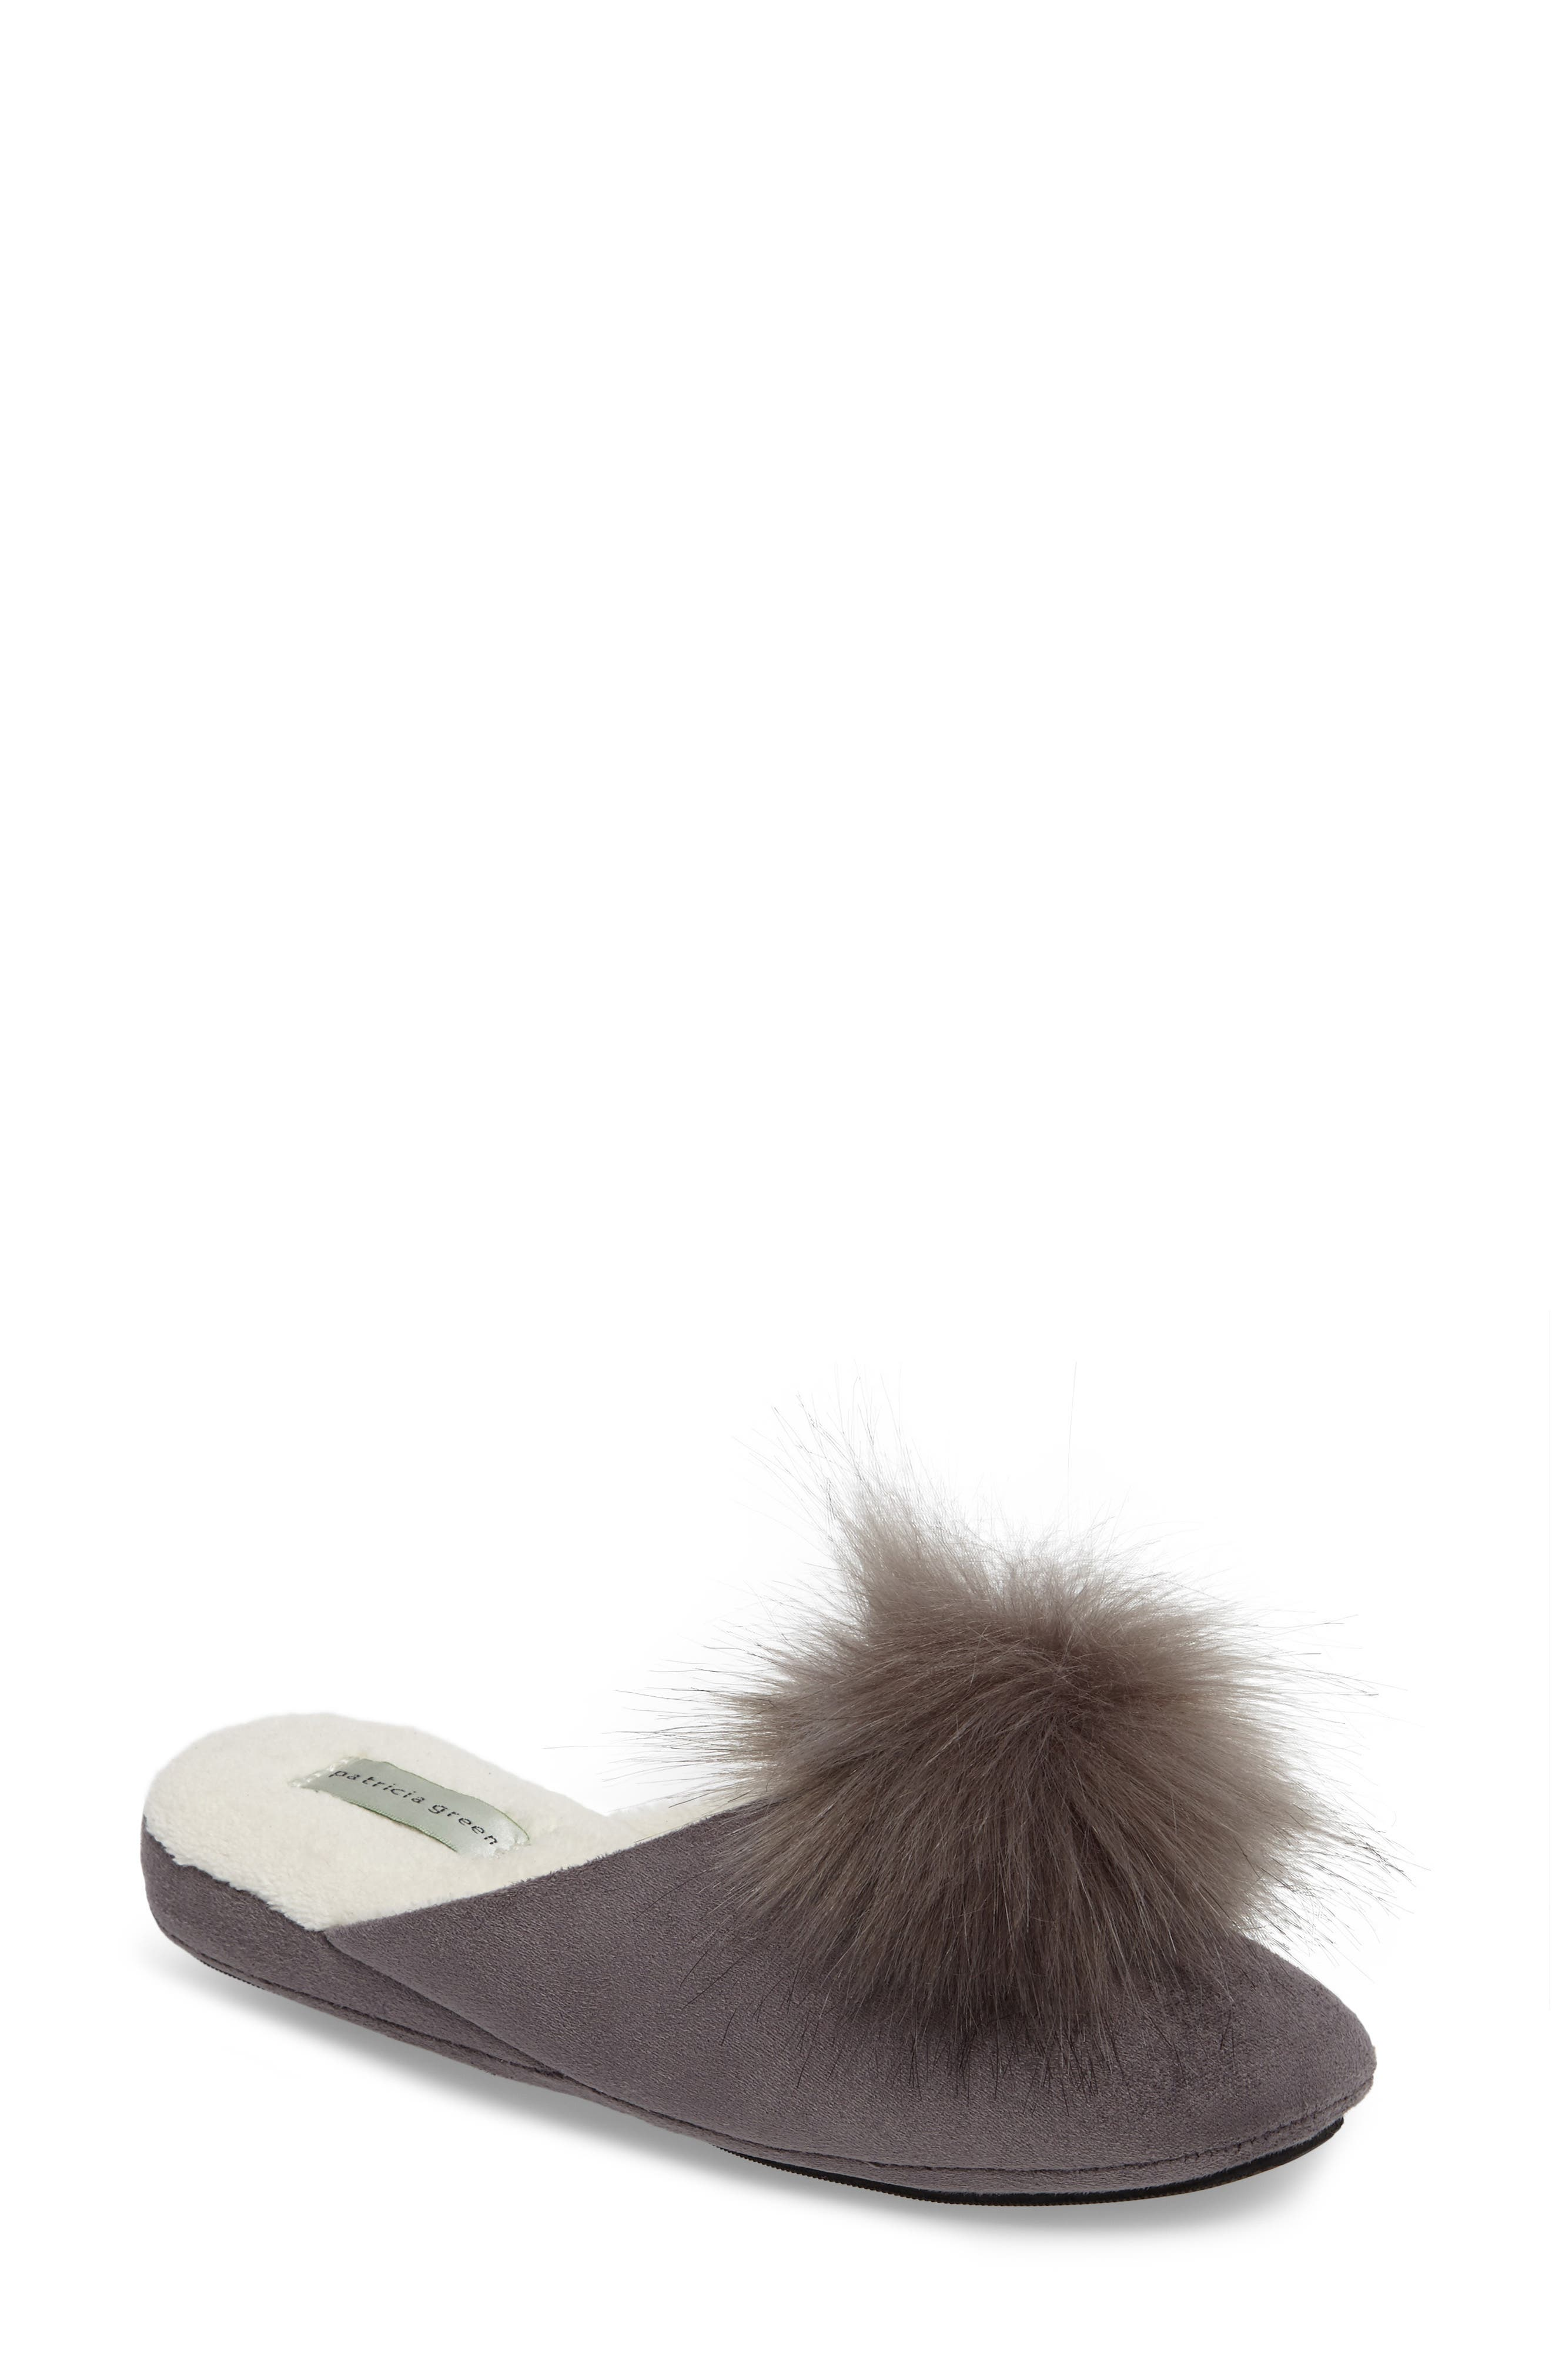 patricia green Pretty Pouf Faux Fur Slipper (Women)